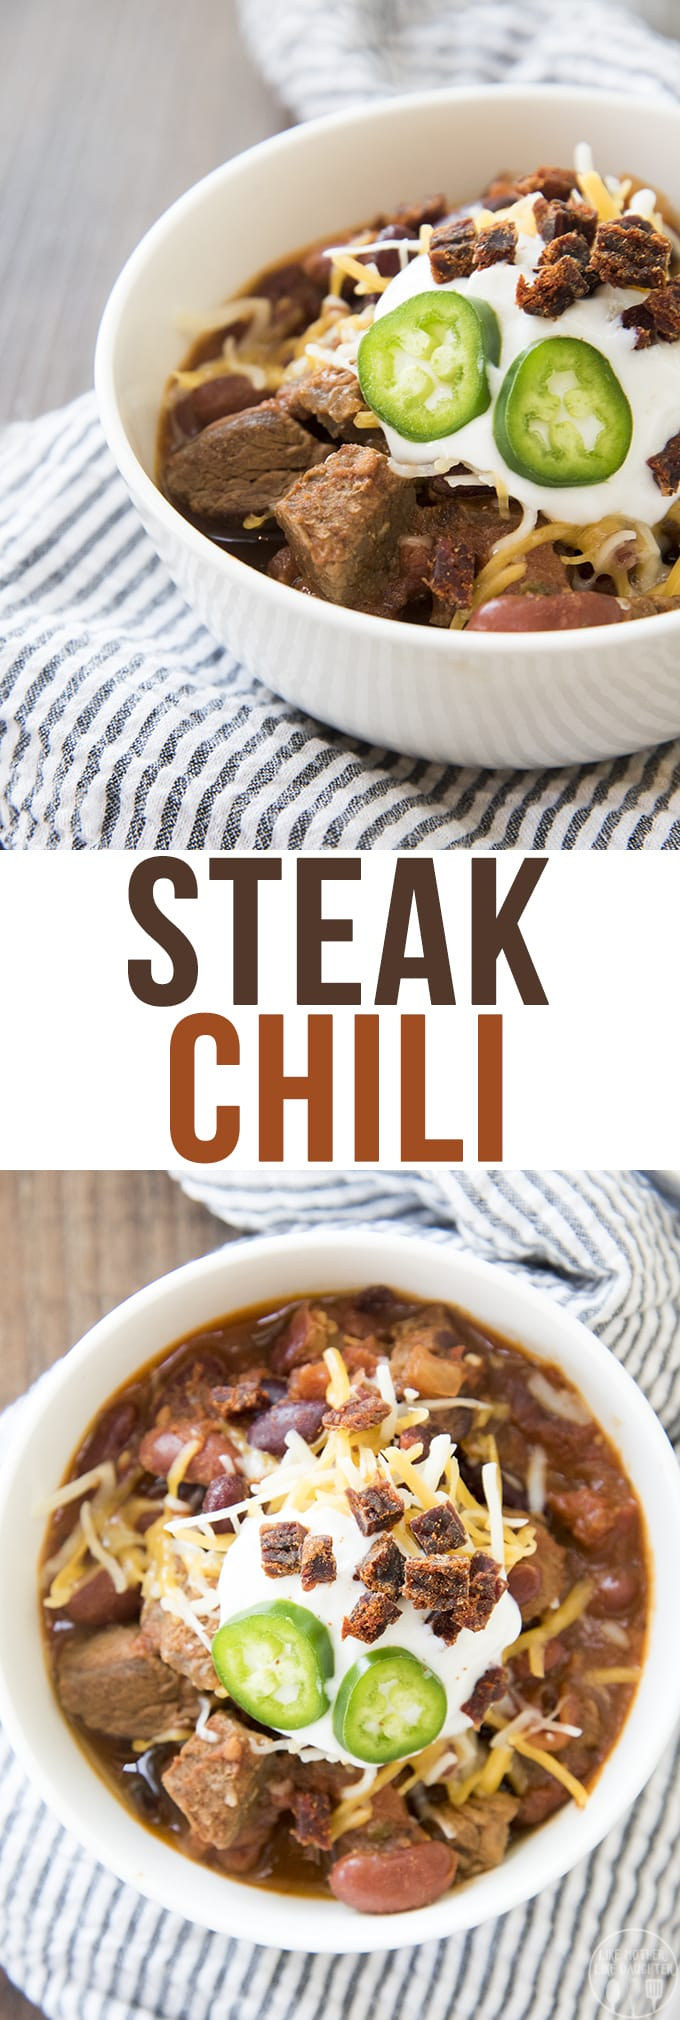 Steak Chili is a delicious and heartychili packed full of big pieces of steak instead of ground beef. Its perfect with your favorite toppingsand great paired with cornbread.